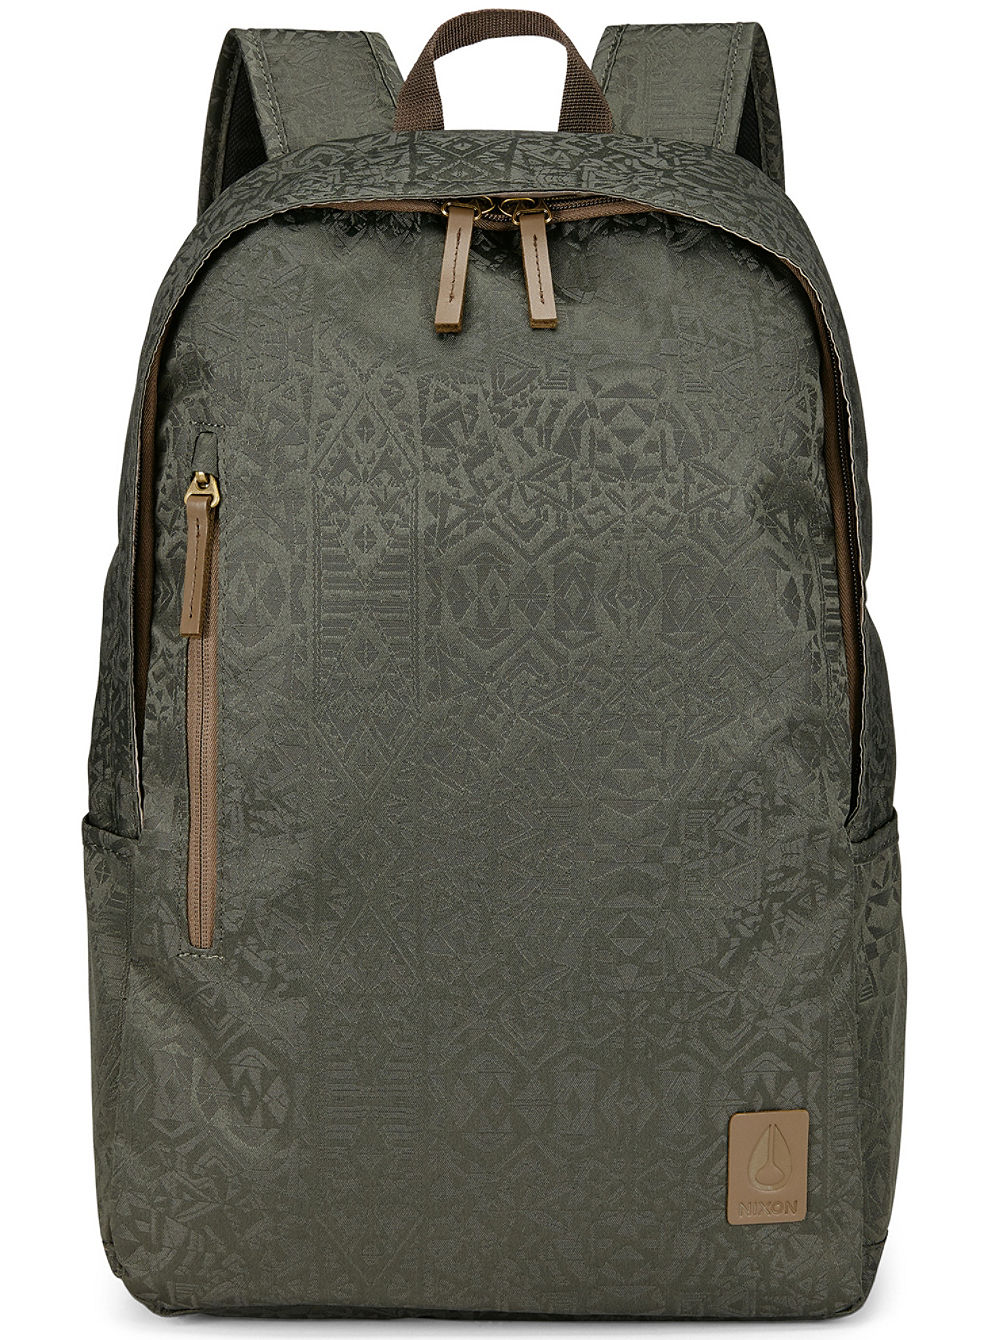 Smith Se II Backpack